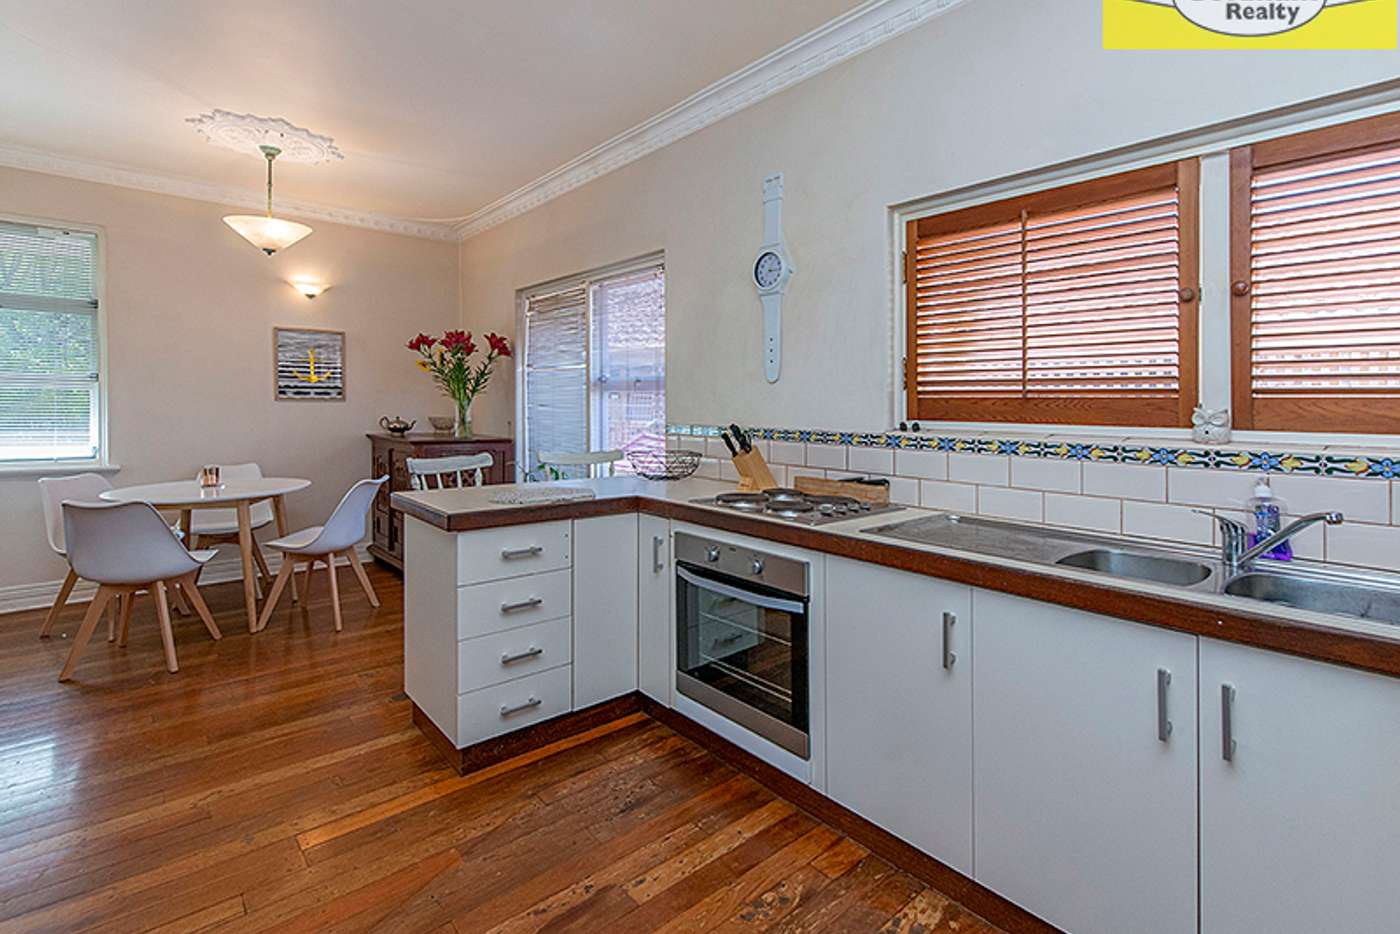 Main view of Homely house listing, 10 Coomoora Road, Mount Pleasant WA 6153